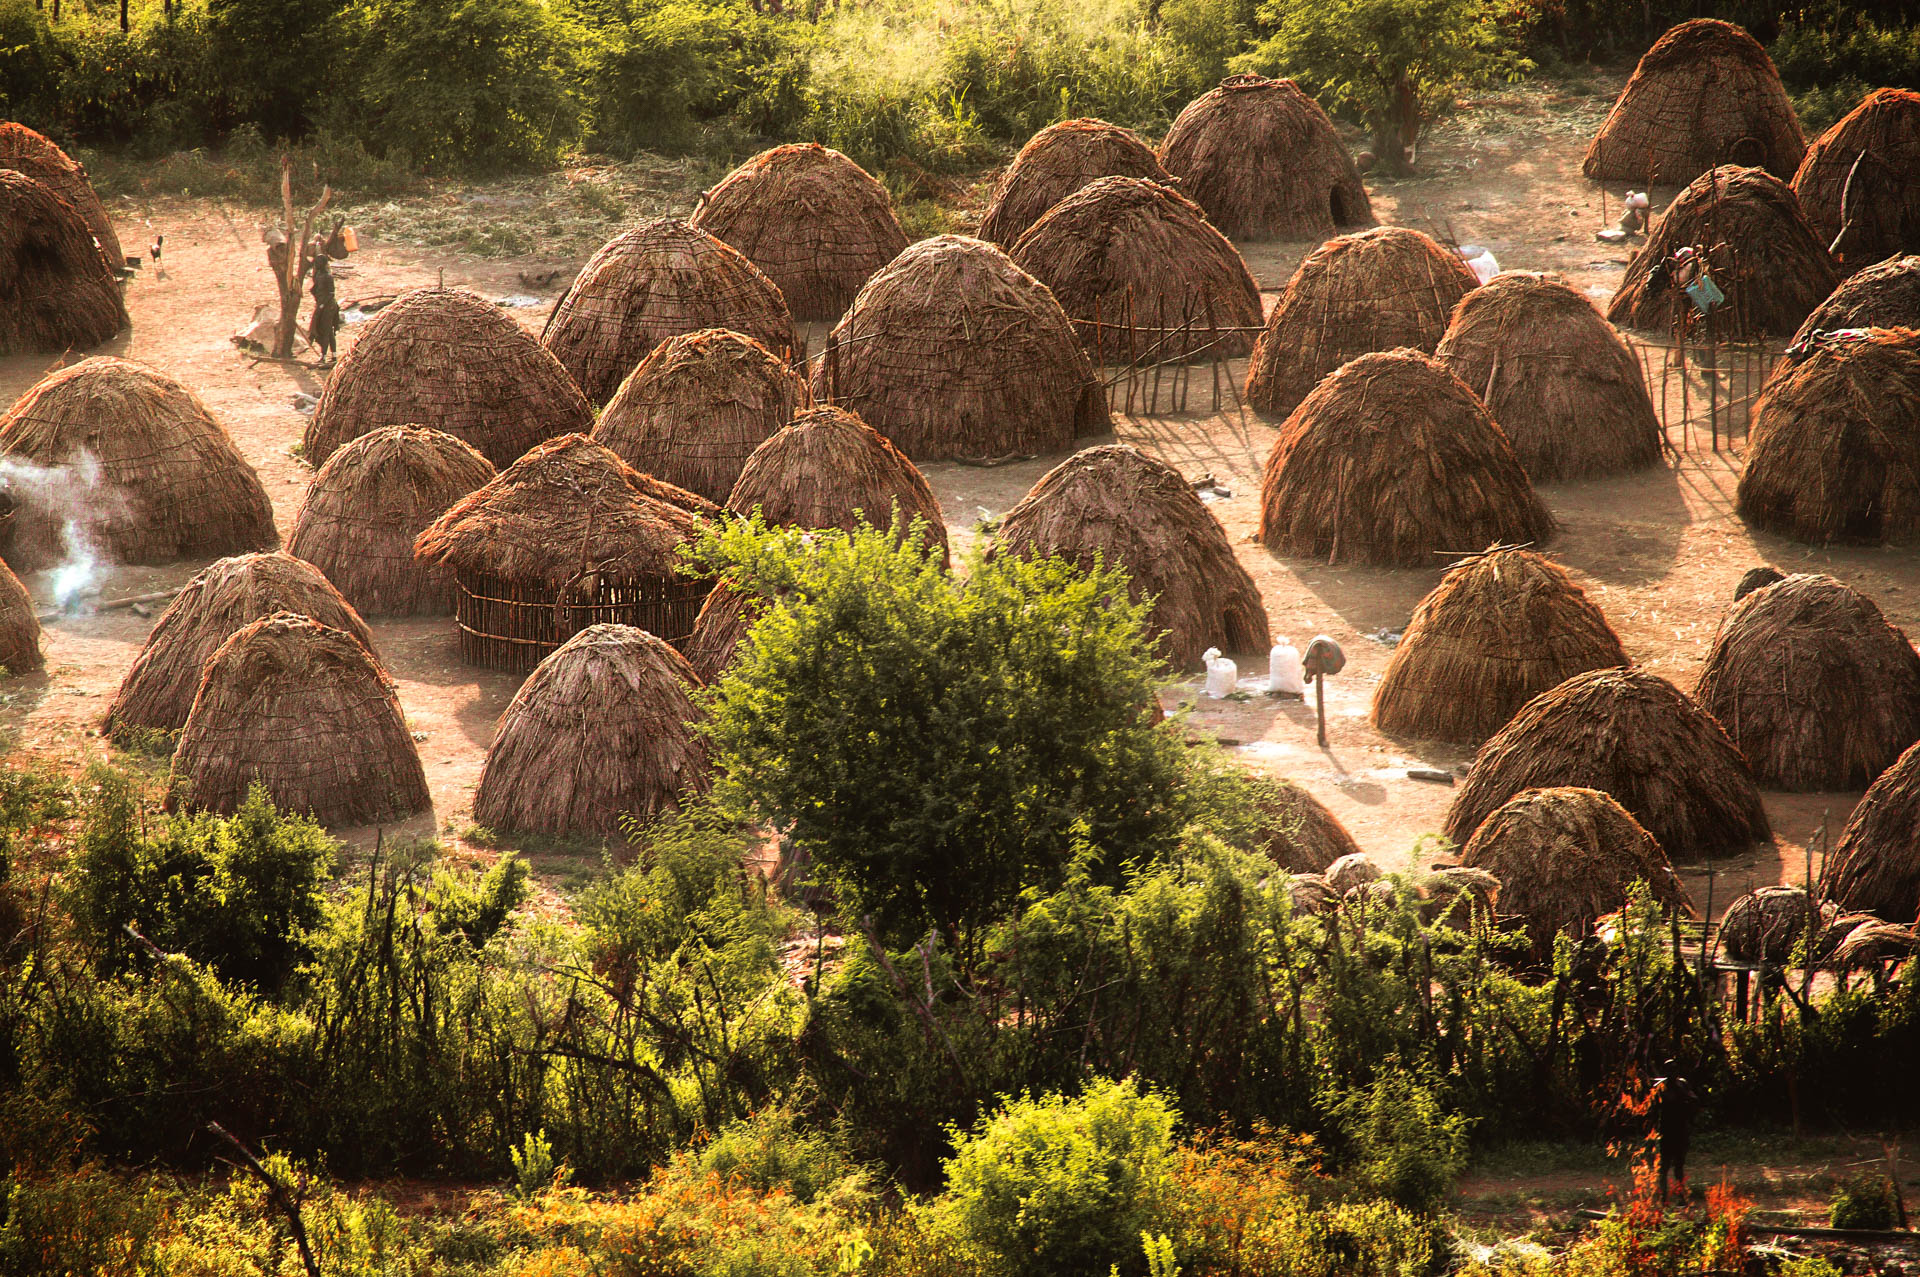 According to an ancient custom, the domed huts of the Mursi village of Komba lie together in a clearing protected by a hedge.